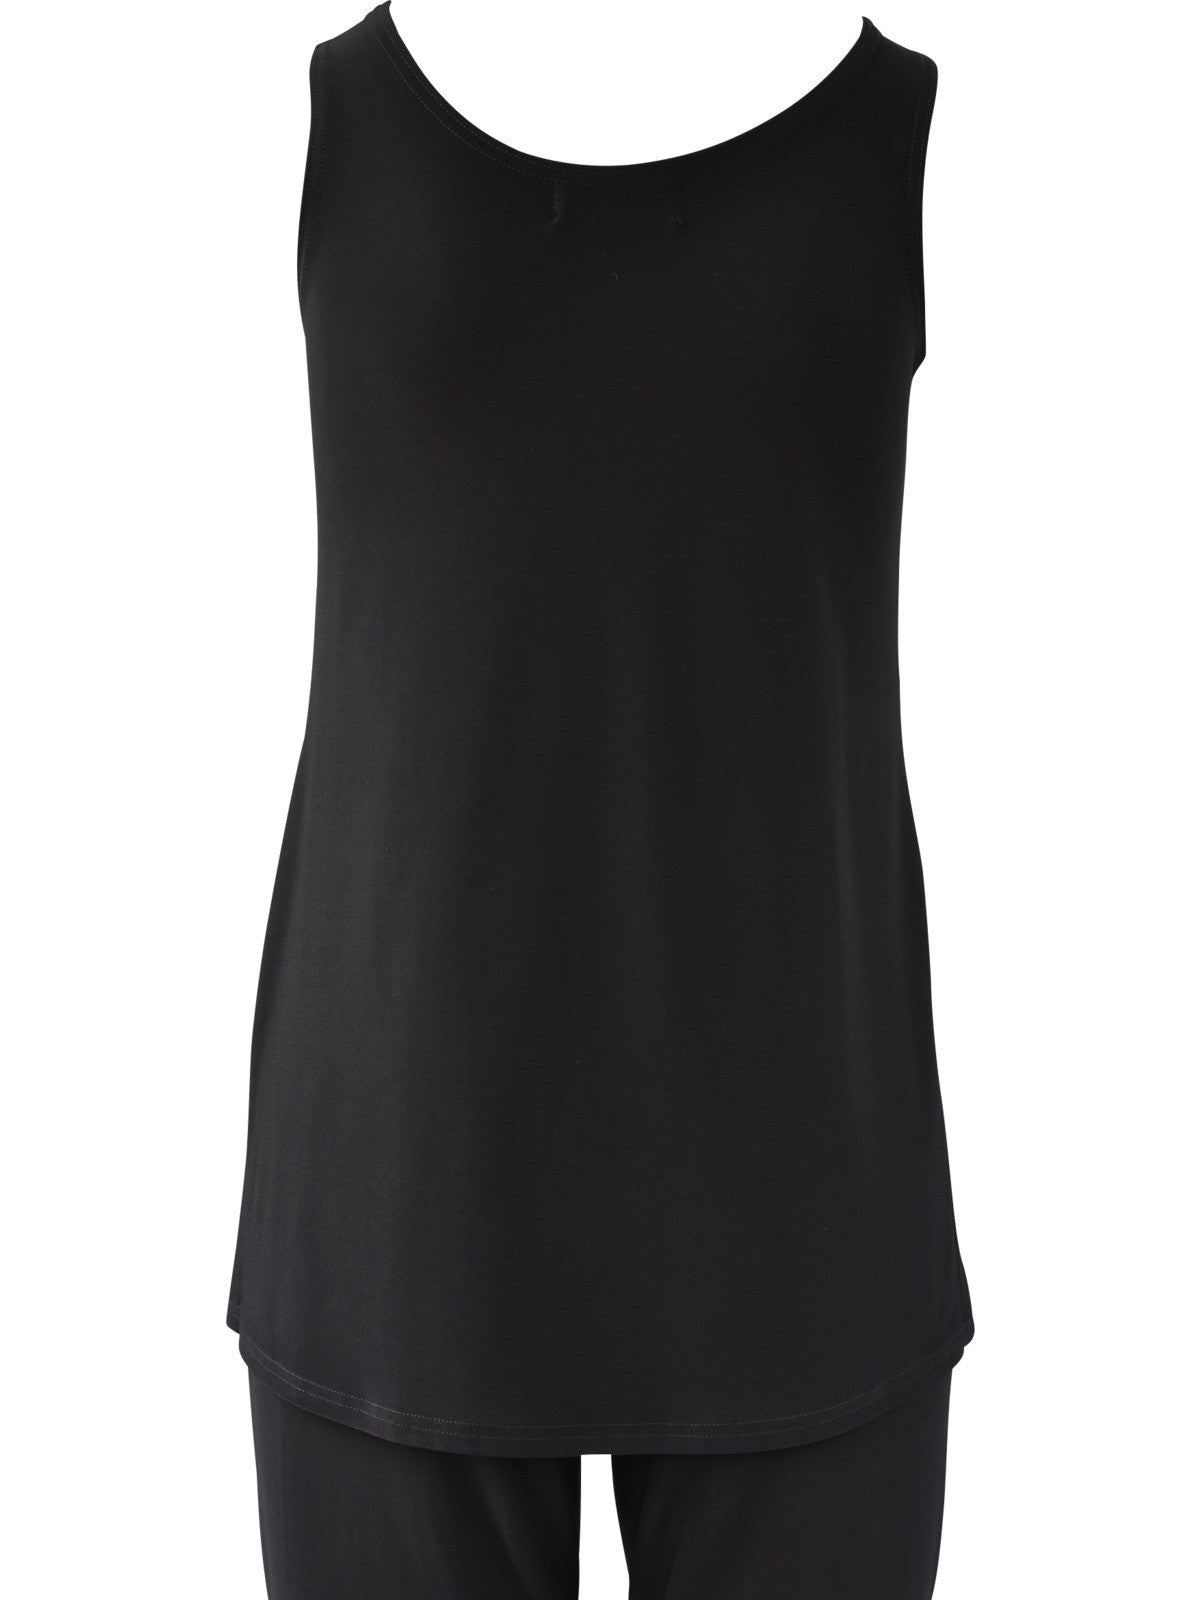 Sympli - Go To Tank Relax - Black